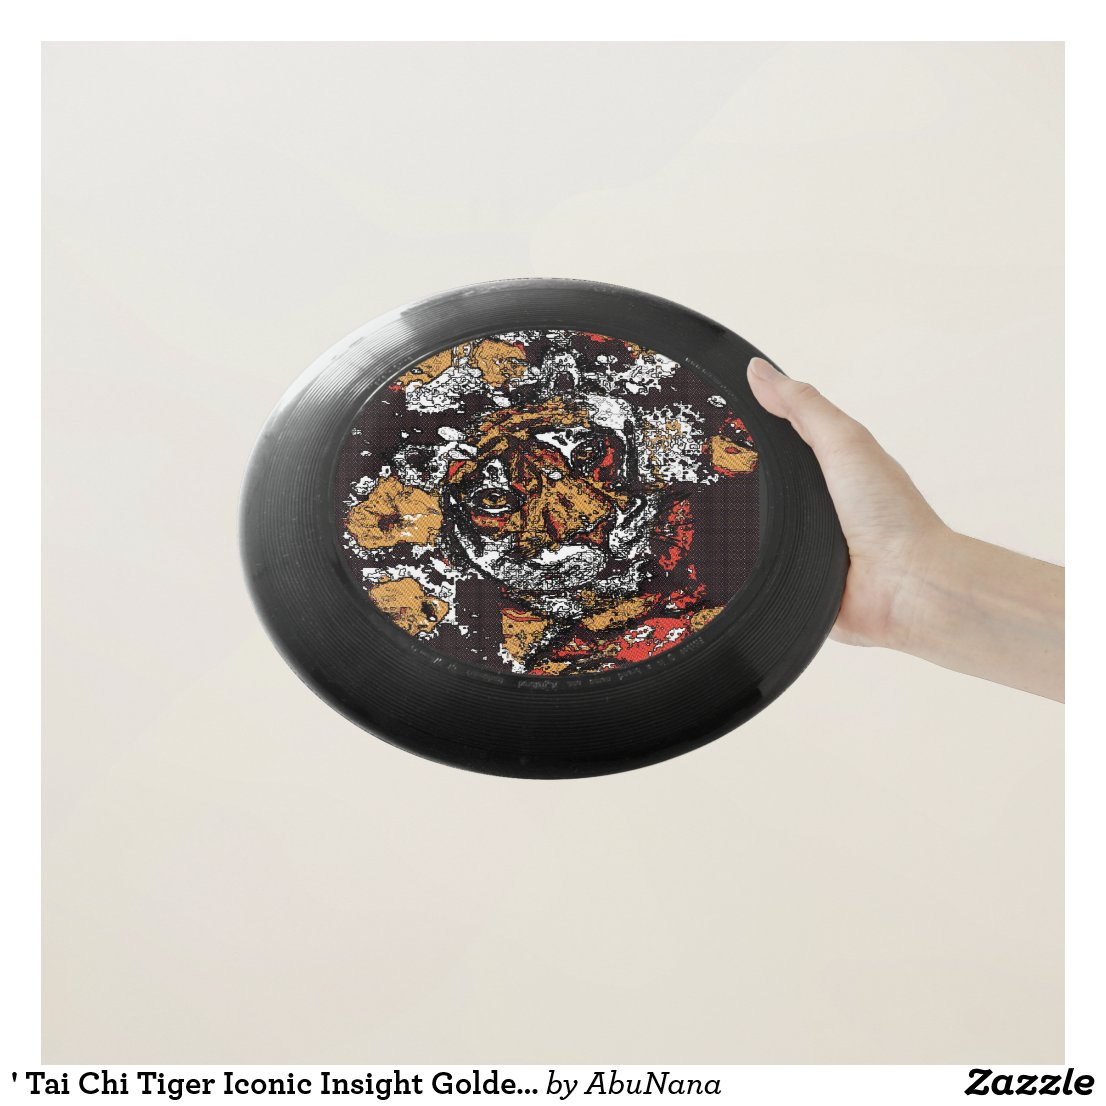 ' Tai Chi Tiger Iconic Insight Golden Browns Wham-O Frisbee